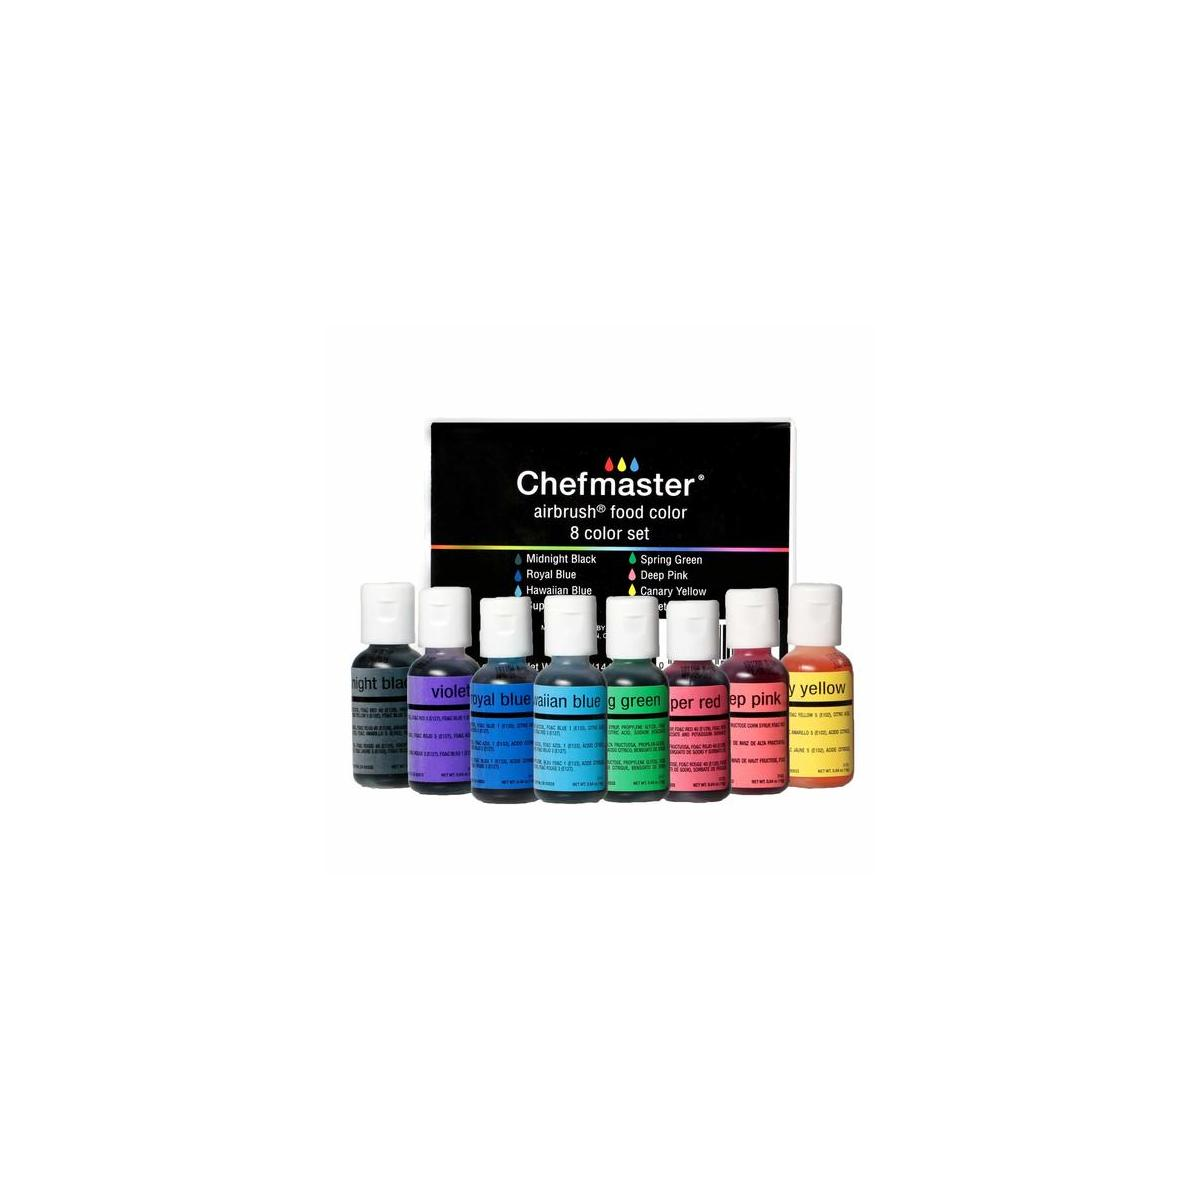 Airbrush Food Coloring For Cake Decorating  from rebatekey-production.s3.us-east-2.amazonaws.com